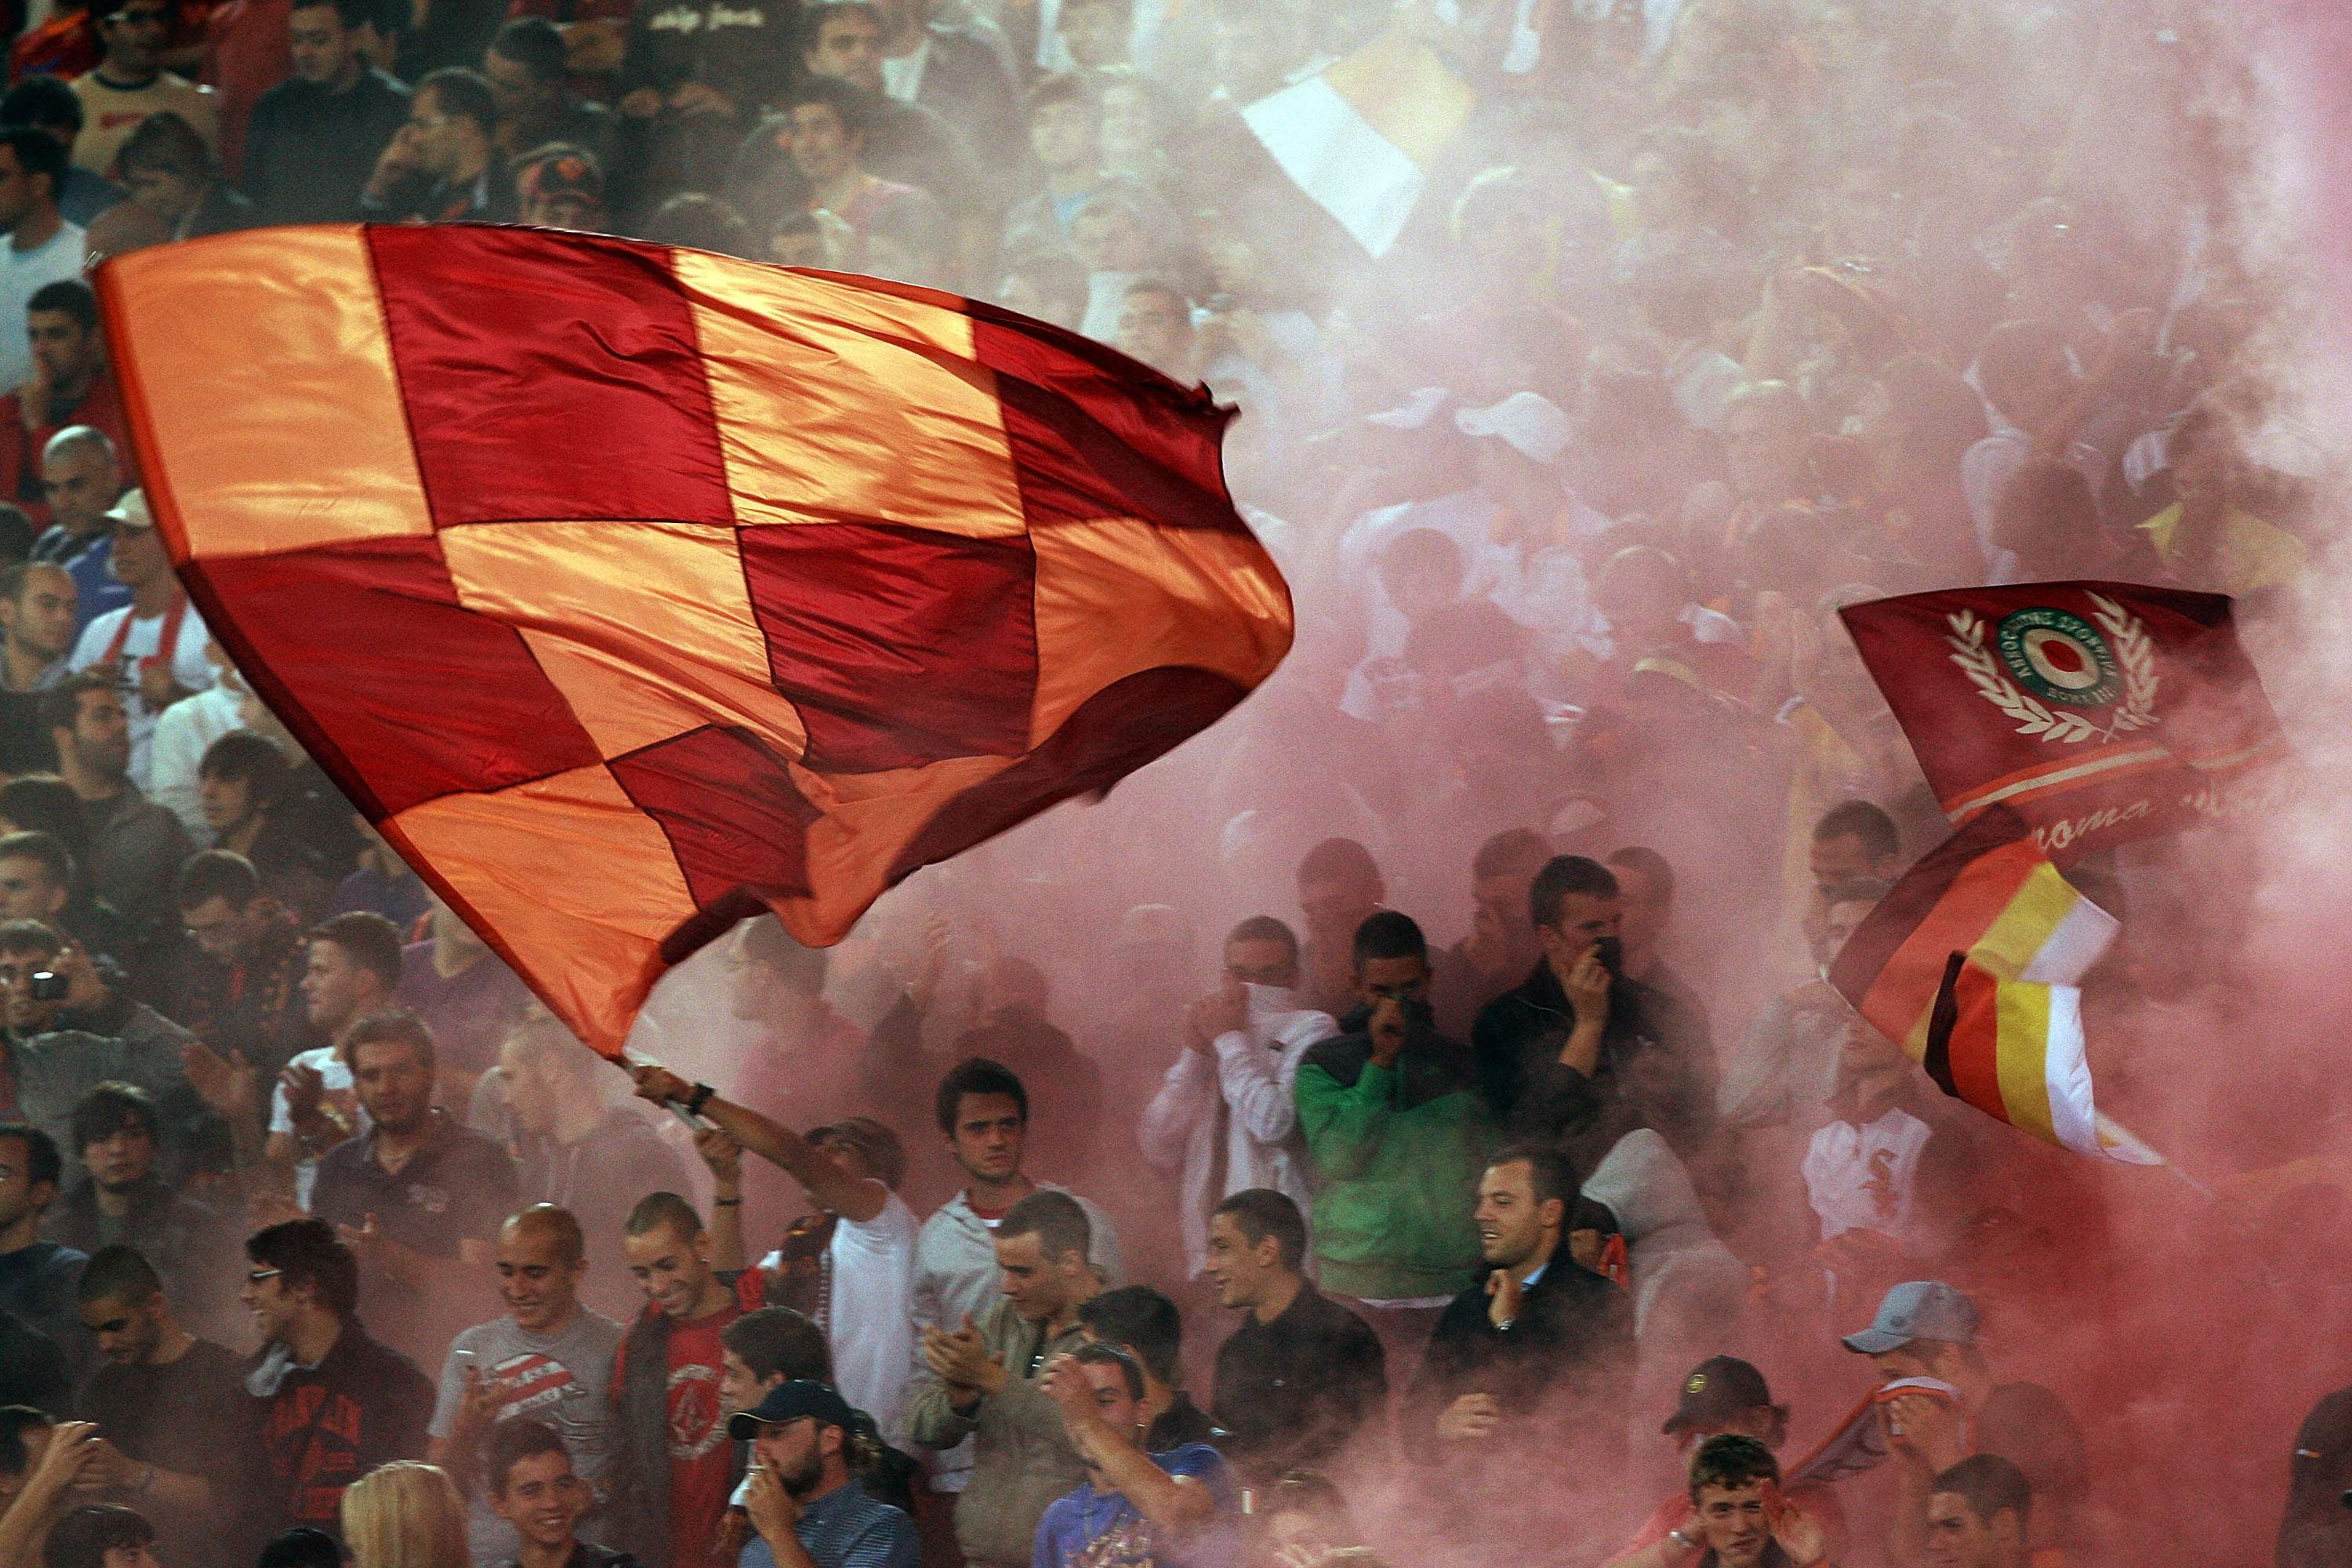 ROME - SEPTEMBER 25: Fans of AS Roma support their team during the Serie A match between AS Roma and FC Internazionale Milano at Stadio Olimpico on September 25, 2010 in Rome, Italy.  (Photo by Paolo Bruno/Getty Images)